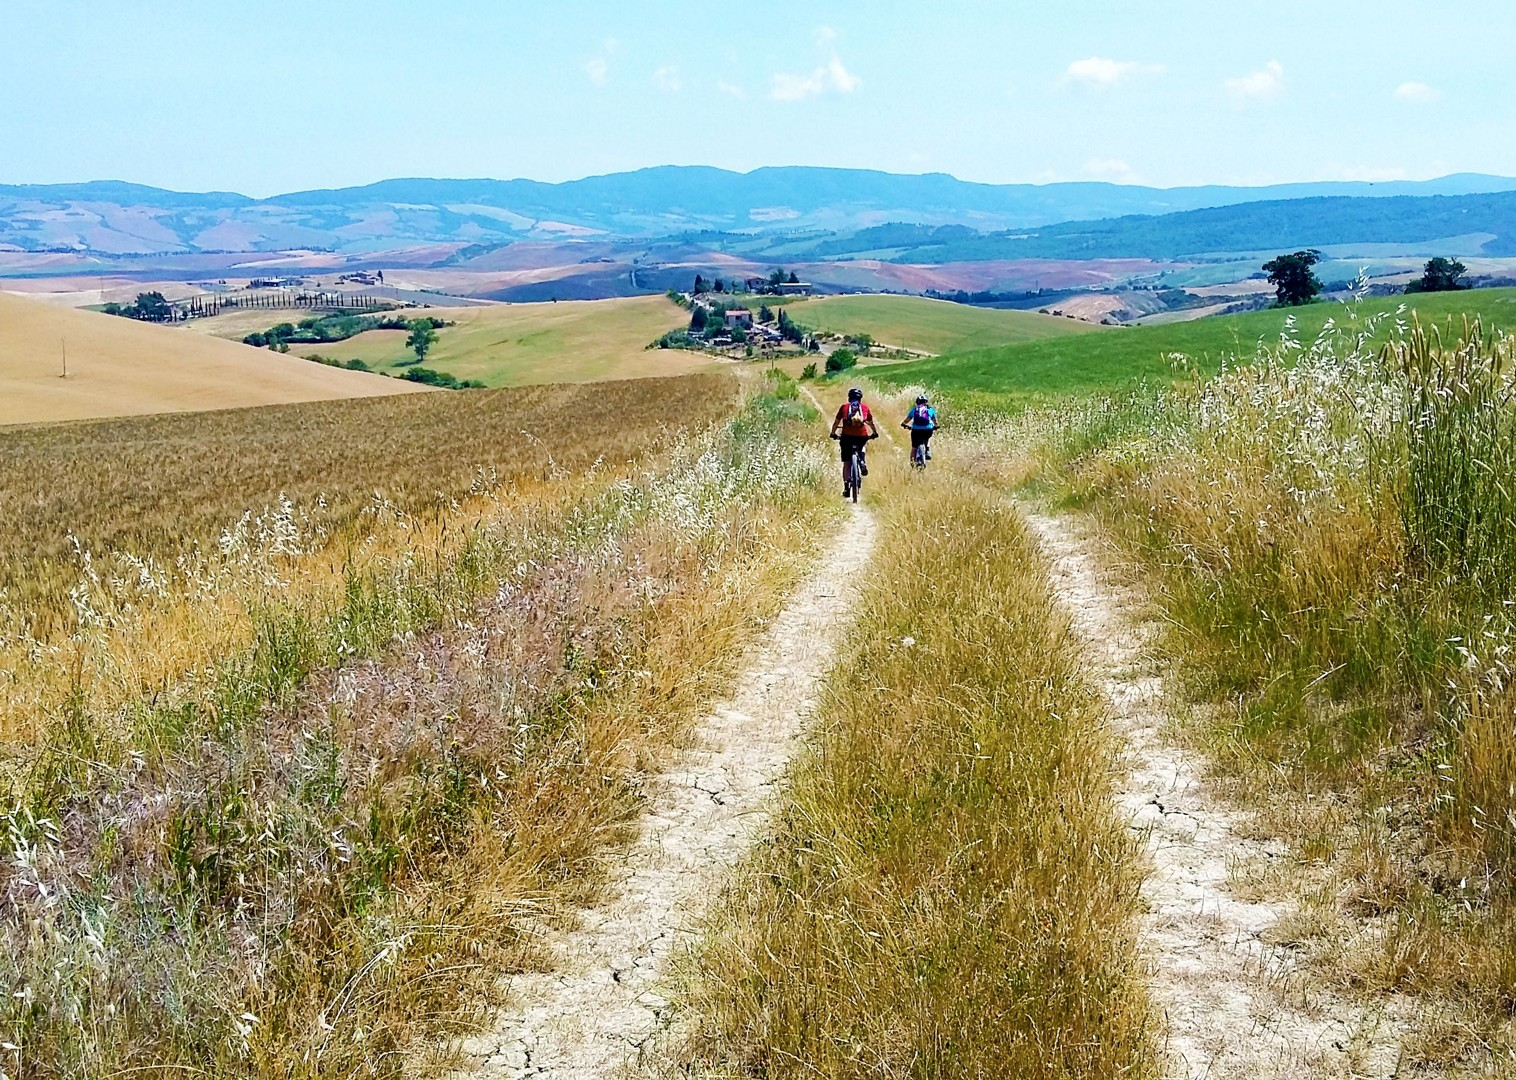 20170605_113843.jpg - Italy - Tuscany - Sacred Routes  - Self Guided Mountain Bike Holiday - Mountain Biking